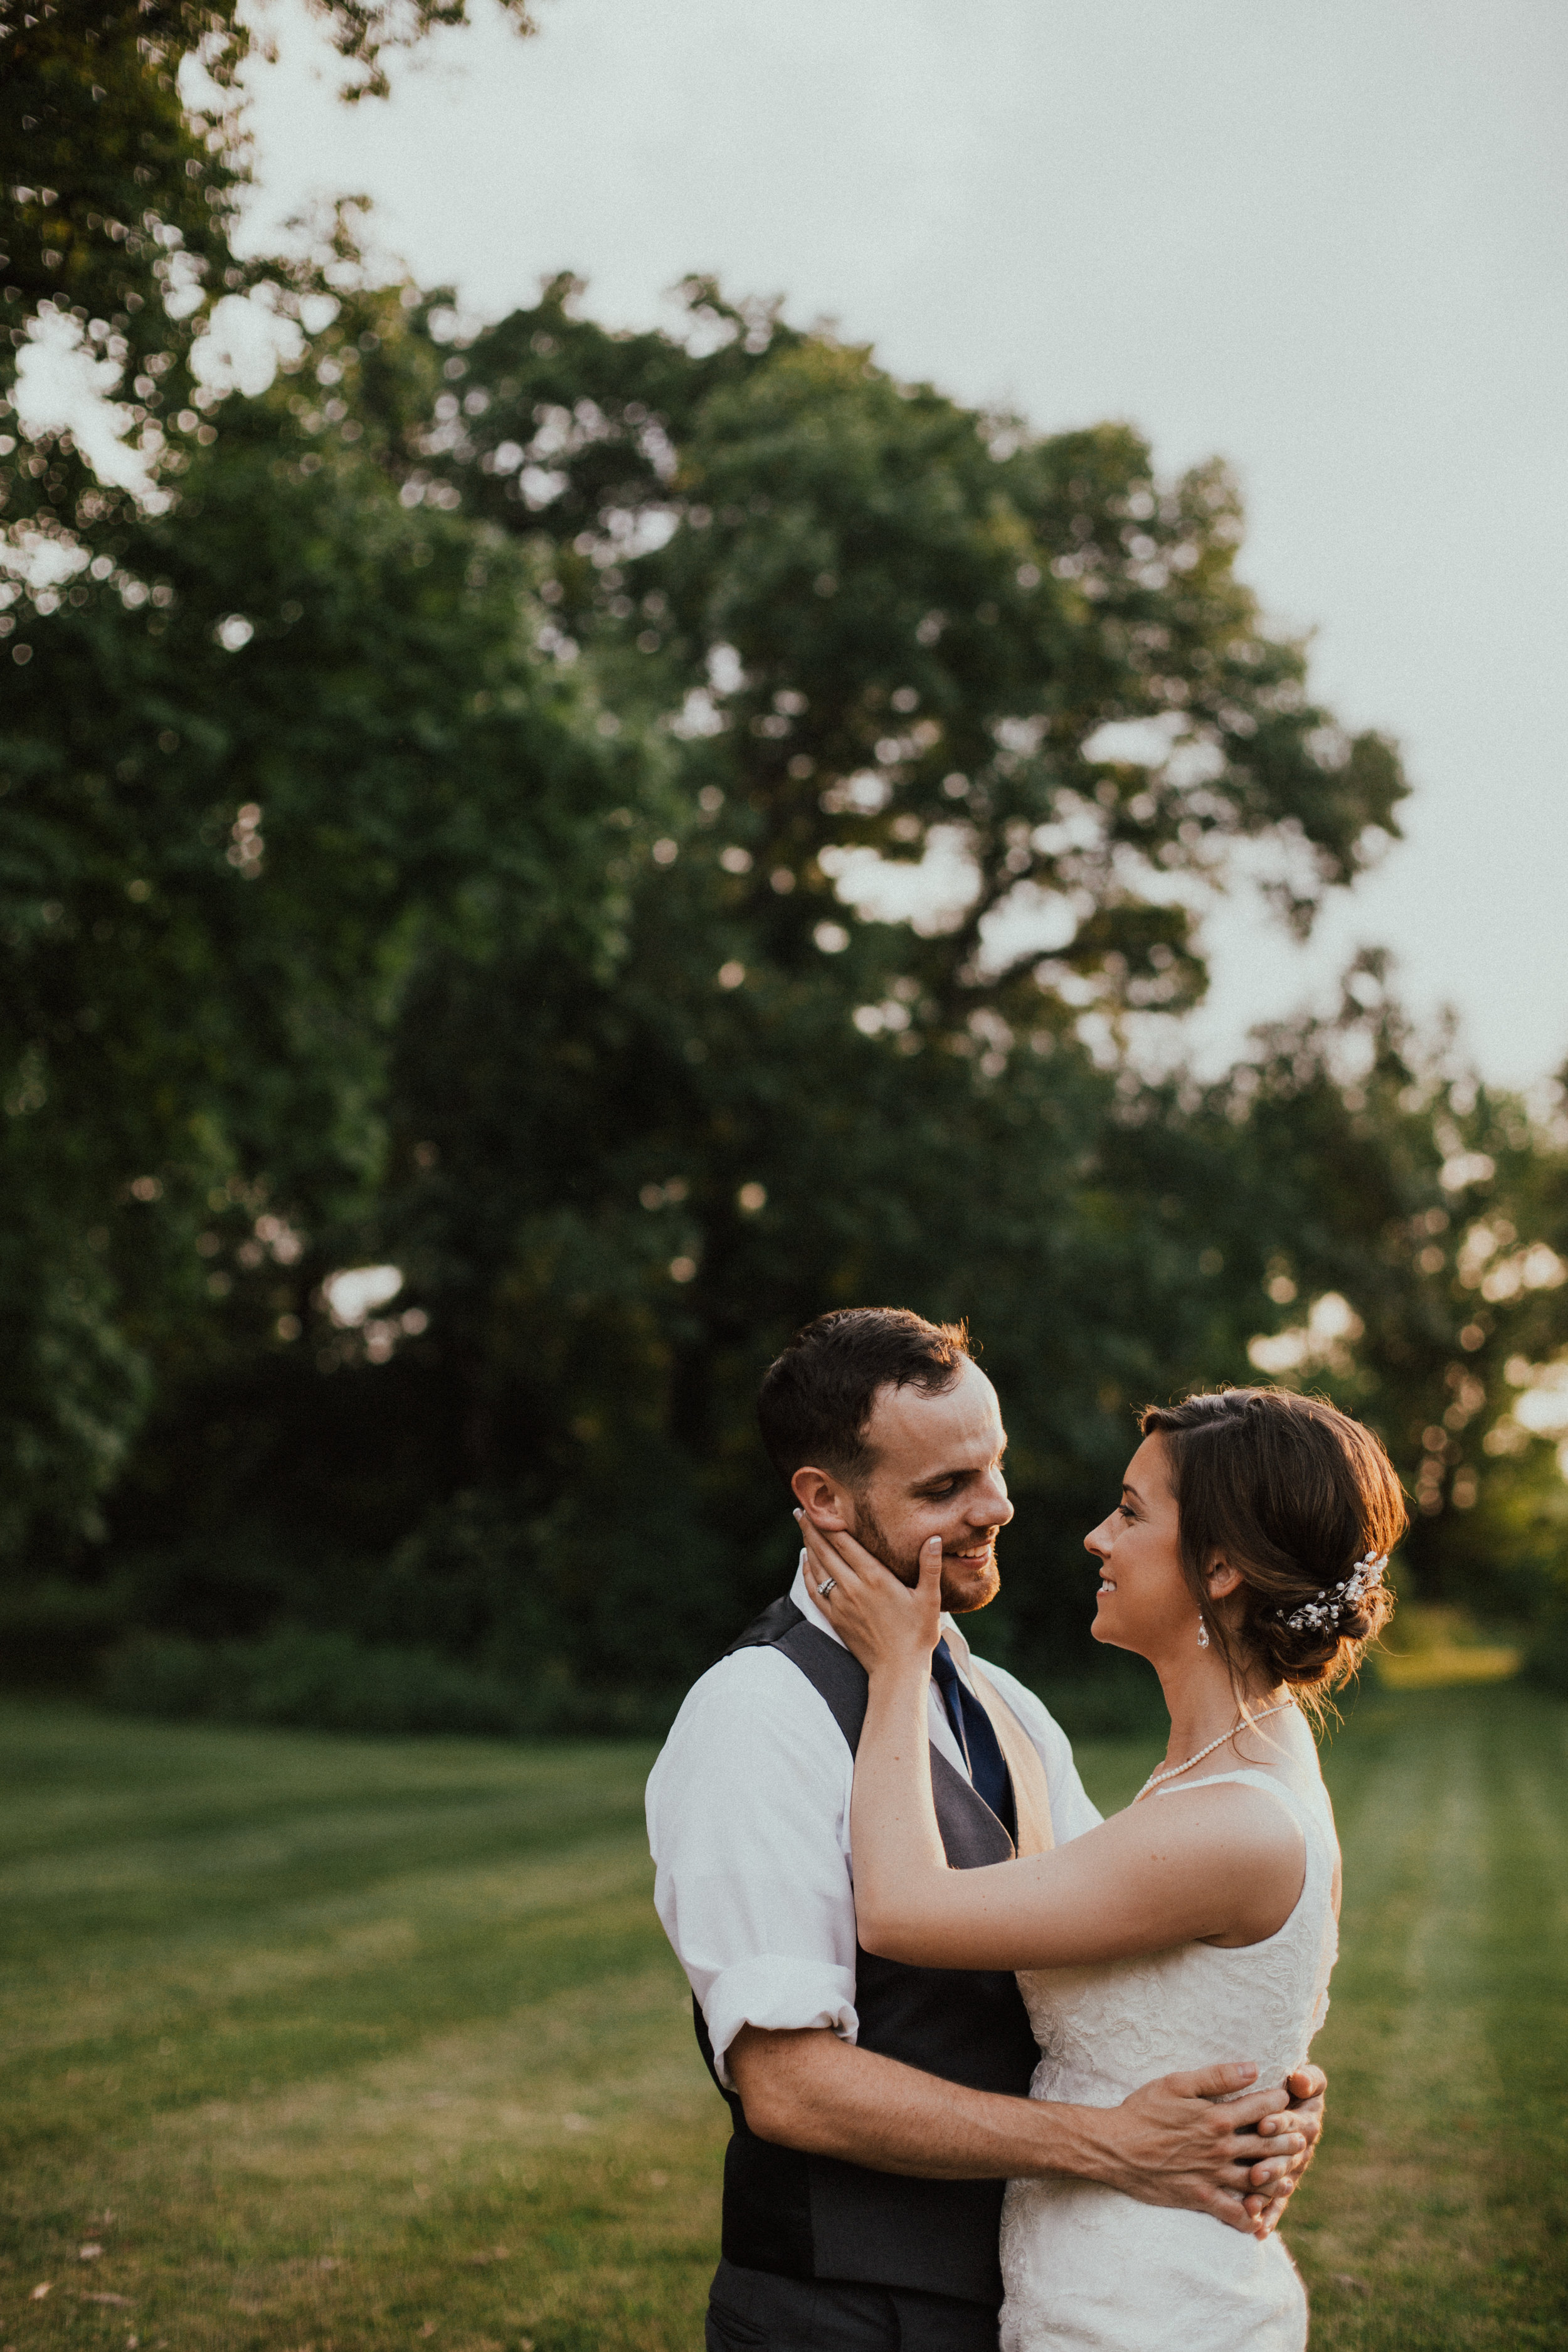 EADS-WEDDING-REAGANLYNNPHOTOGRAPHY-ANDERSON-INDIANA-49.jpg